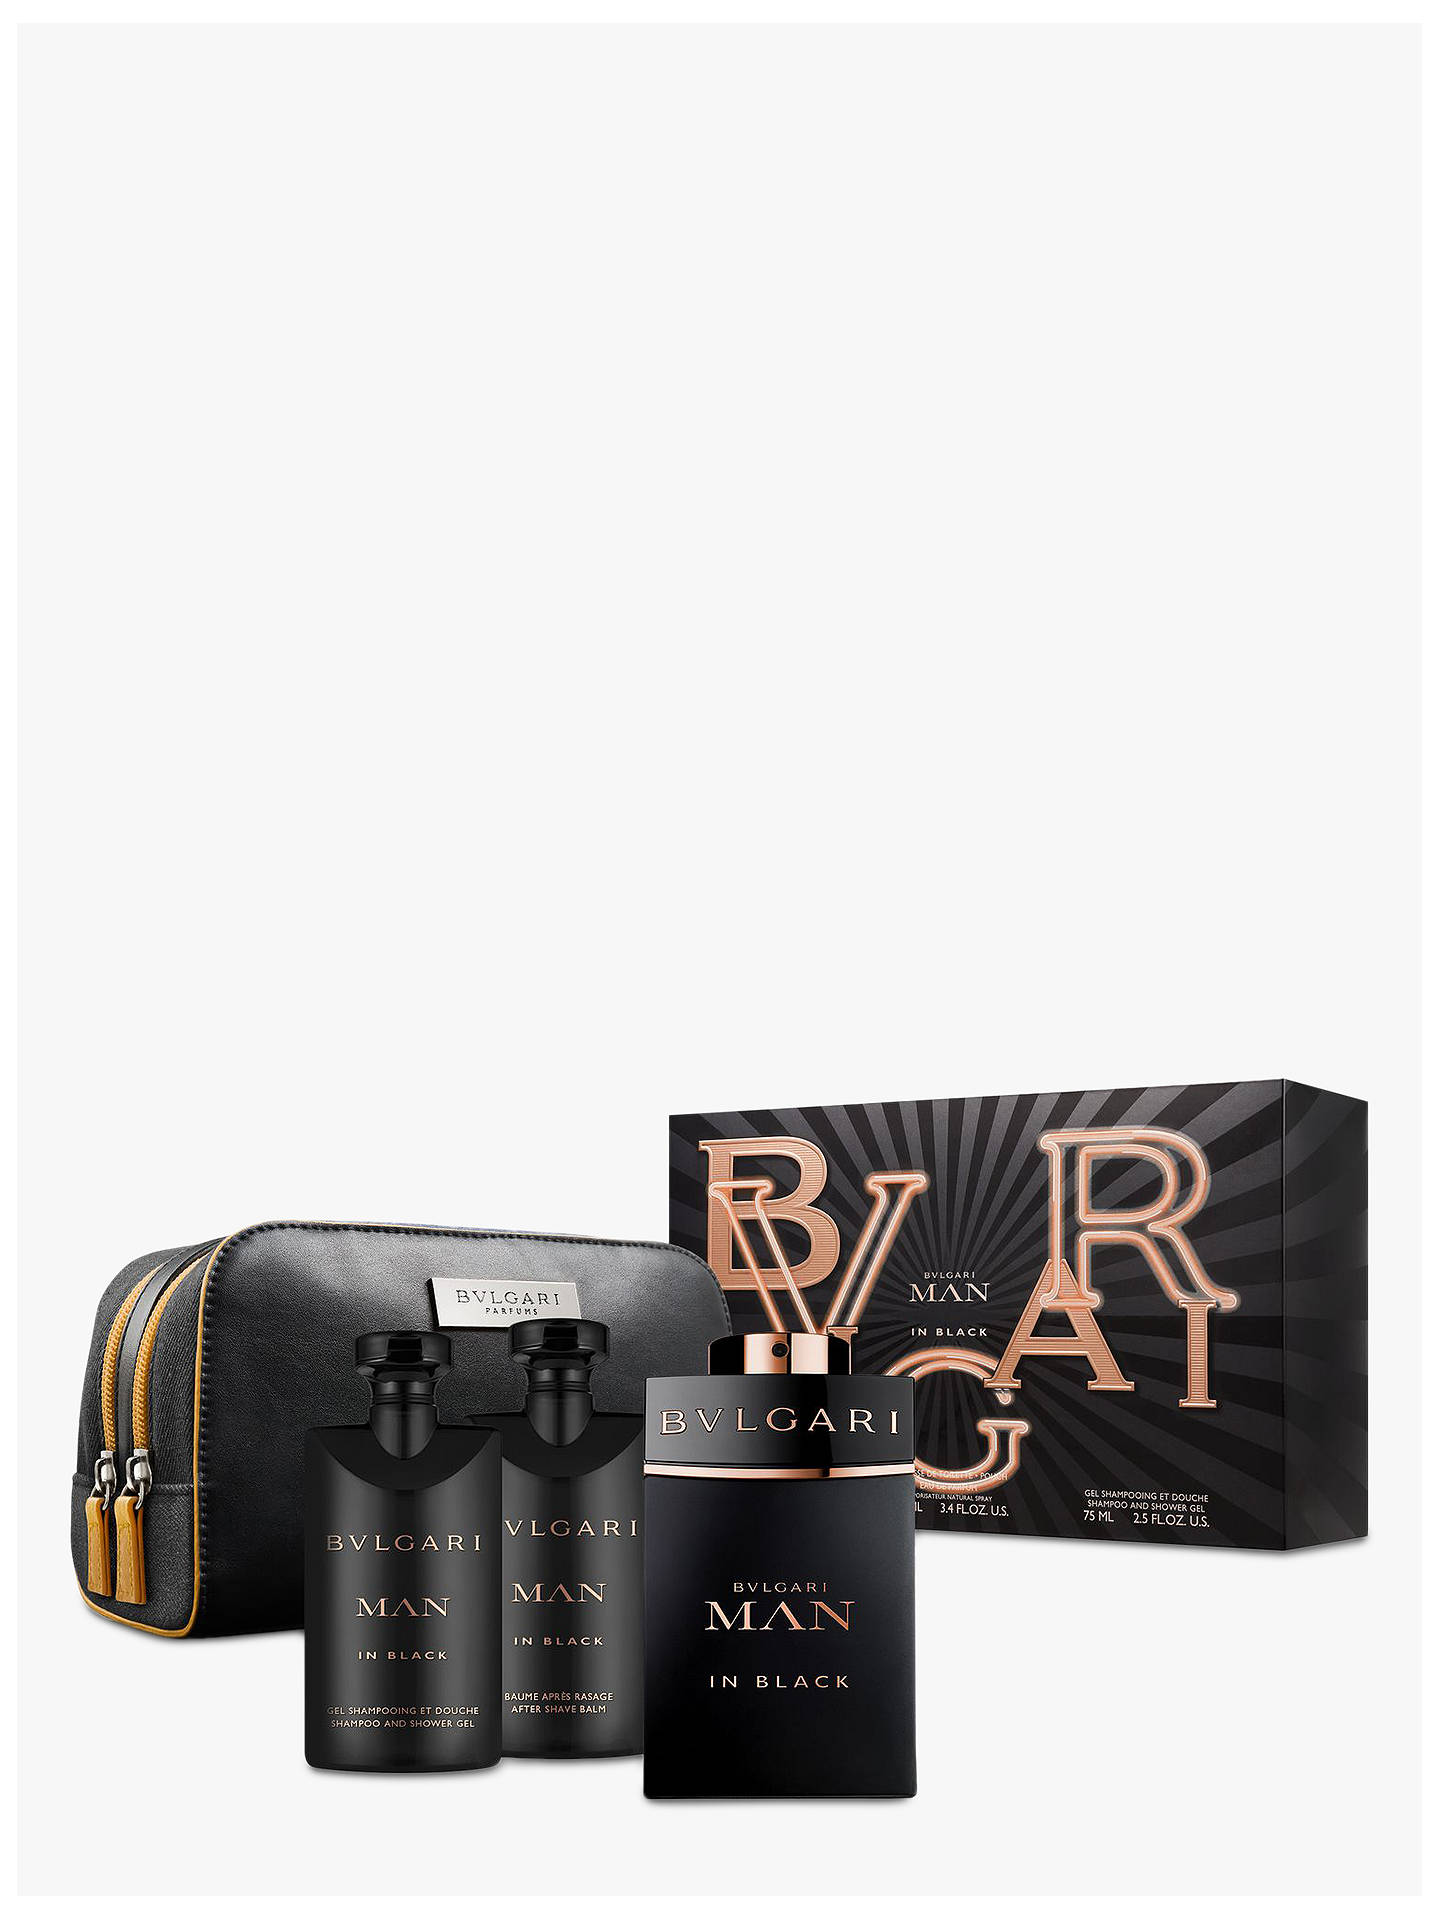 Buy BVLGARI Man in Black 100ml Eau de Parfum Gift Set Online at johnlewis.com